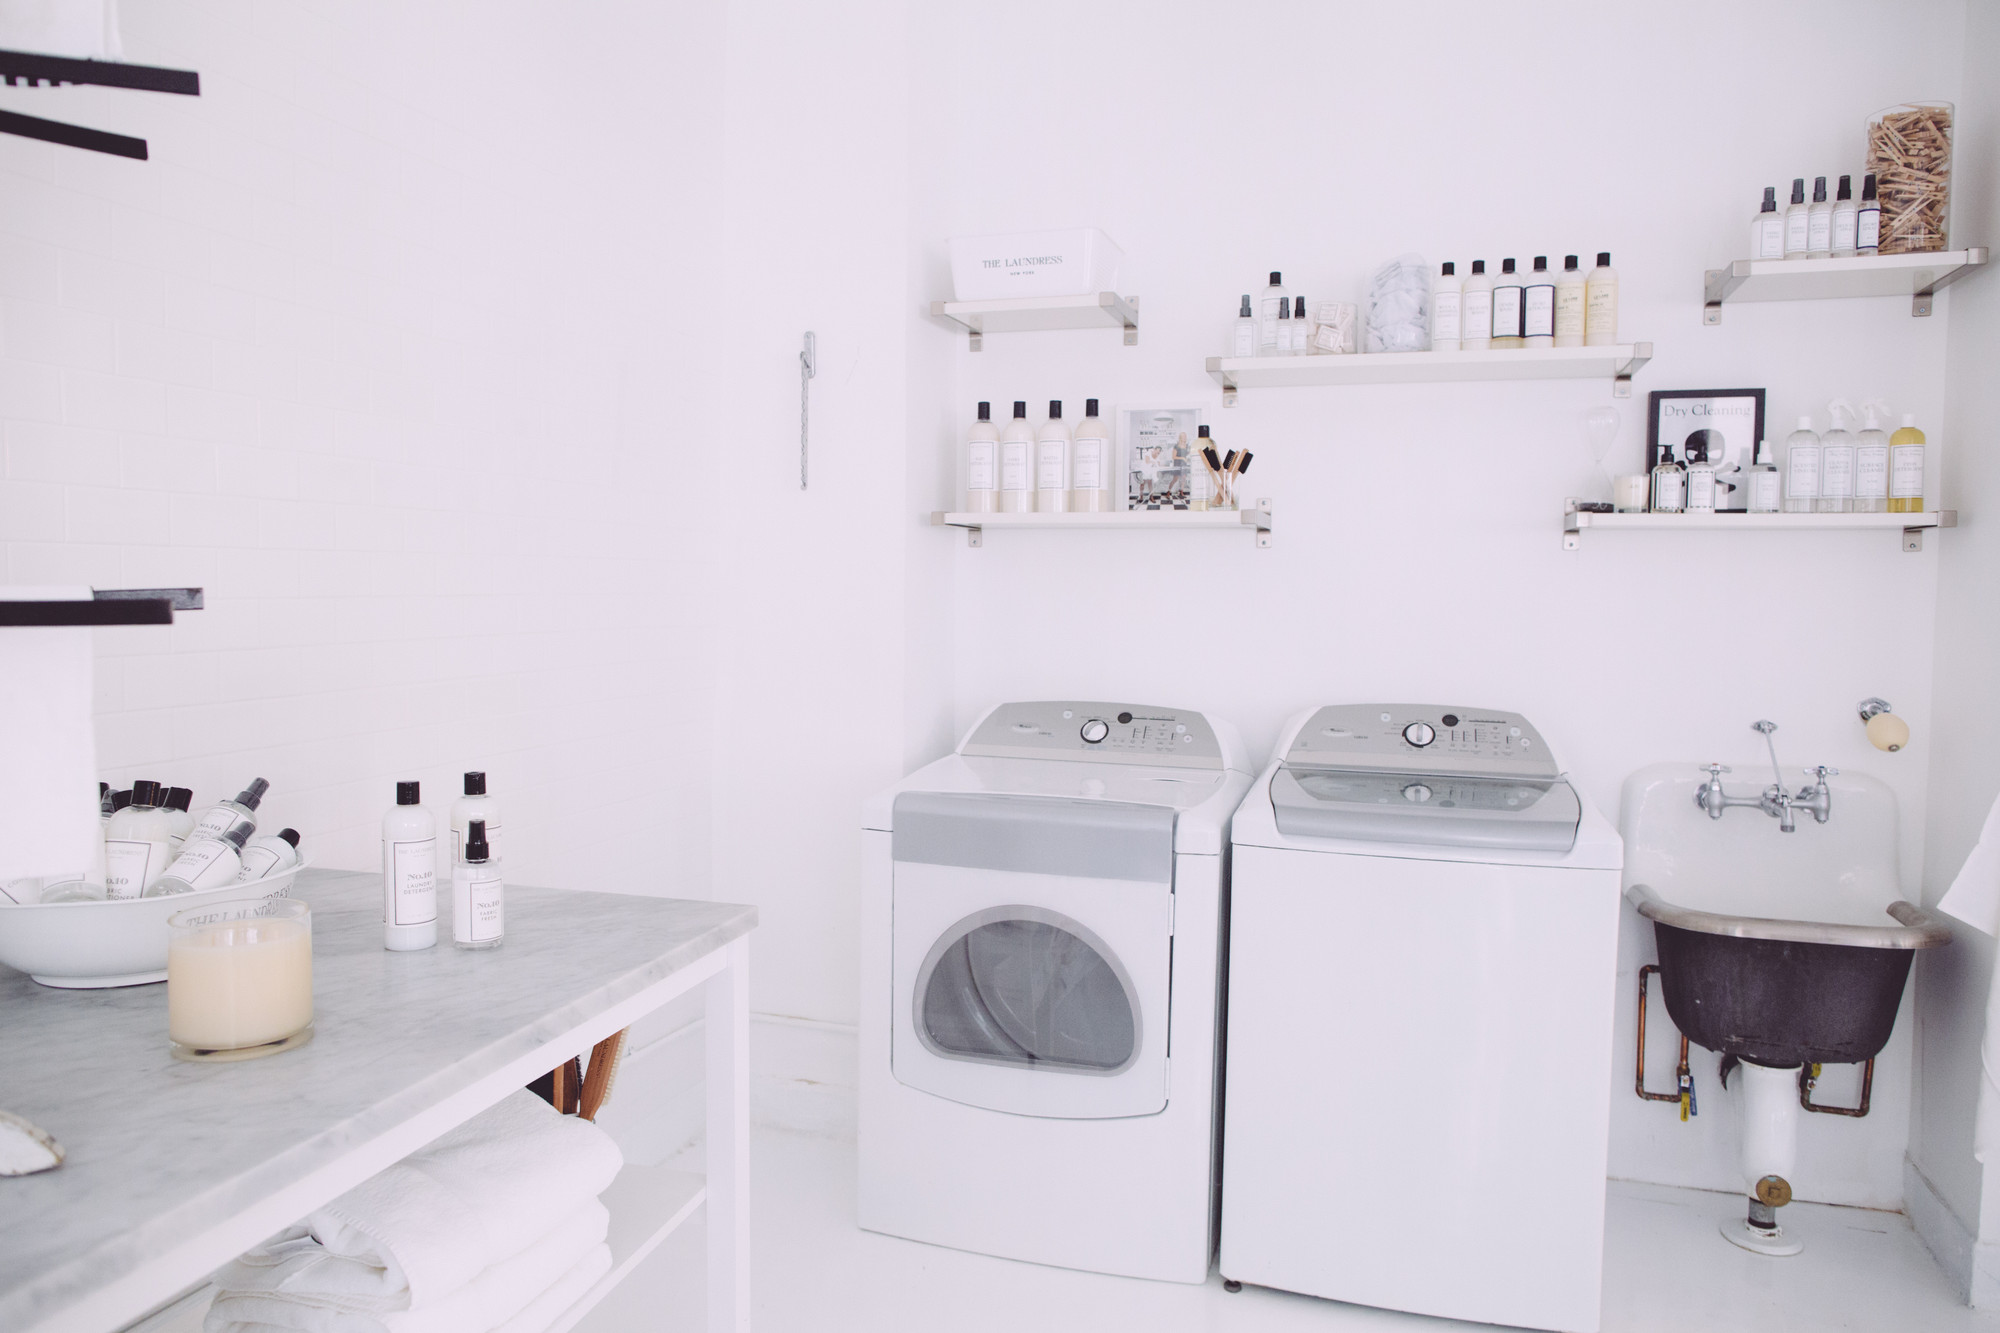 CMSPage_The Laundry Room_IMAGE_01